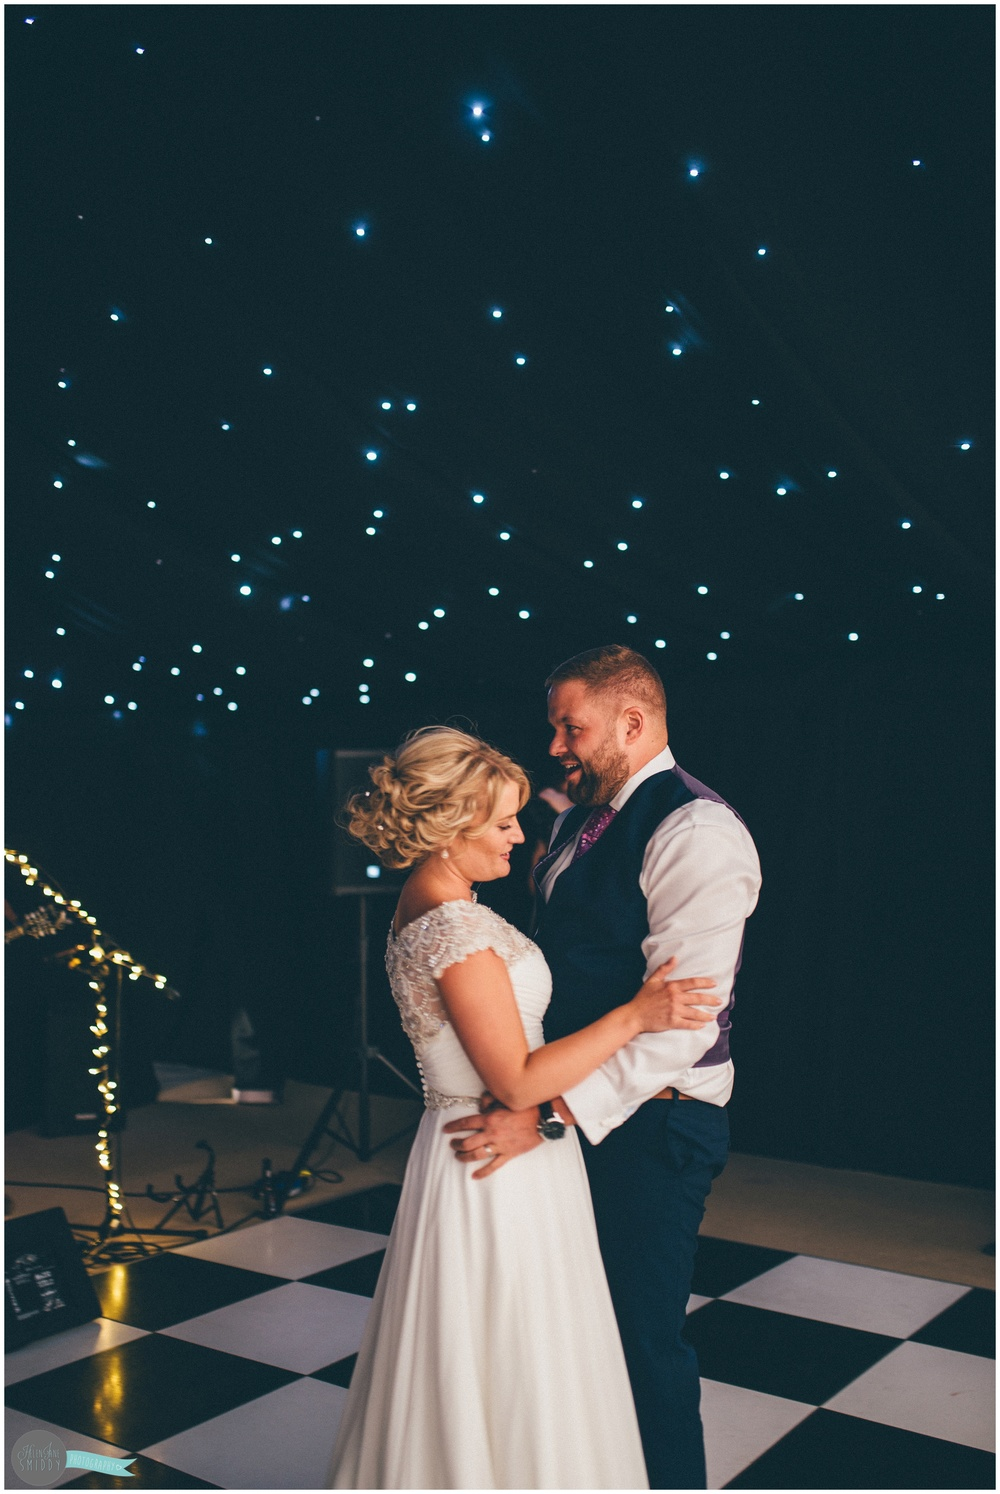 wedding-photography-cheshire-kingsley-pinterest-DIY-decorations-pale-blue-boho-makeup-make-up-artist-bride-dress-prosecco-confetti-cake-weddingcake-frosting-portrait